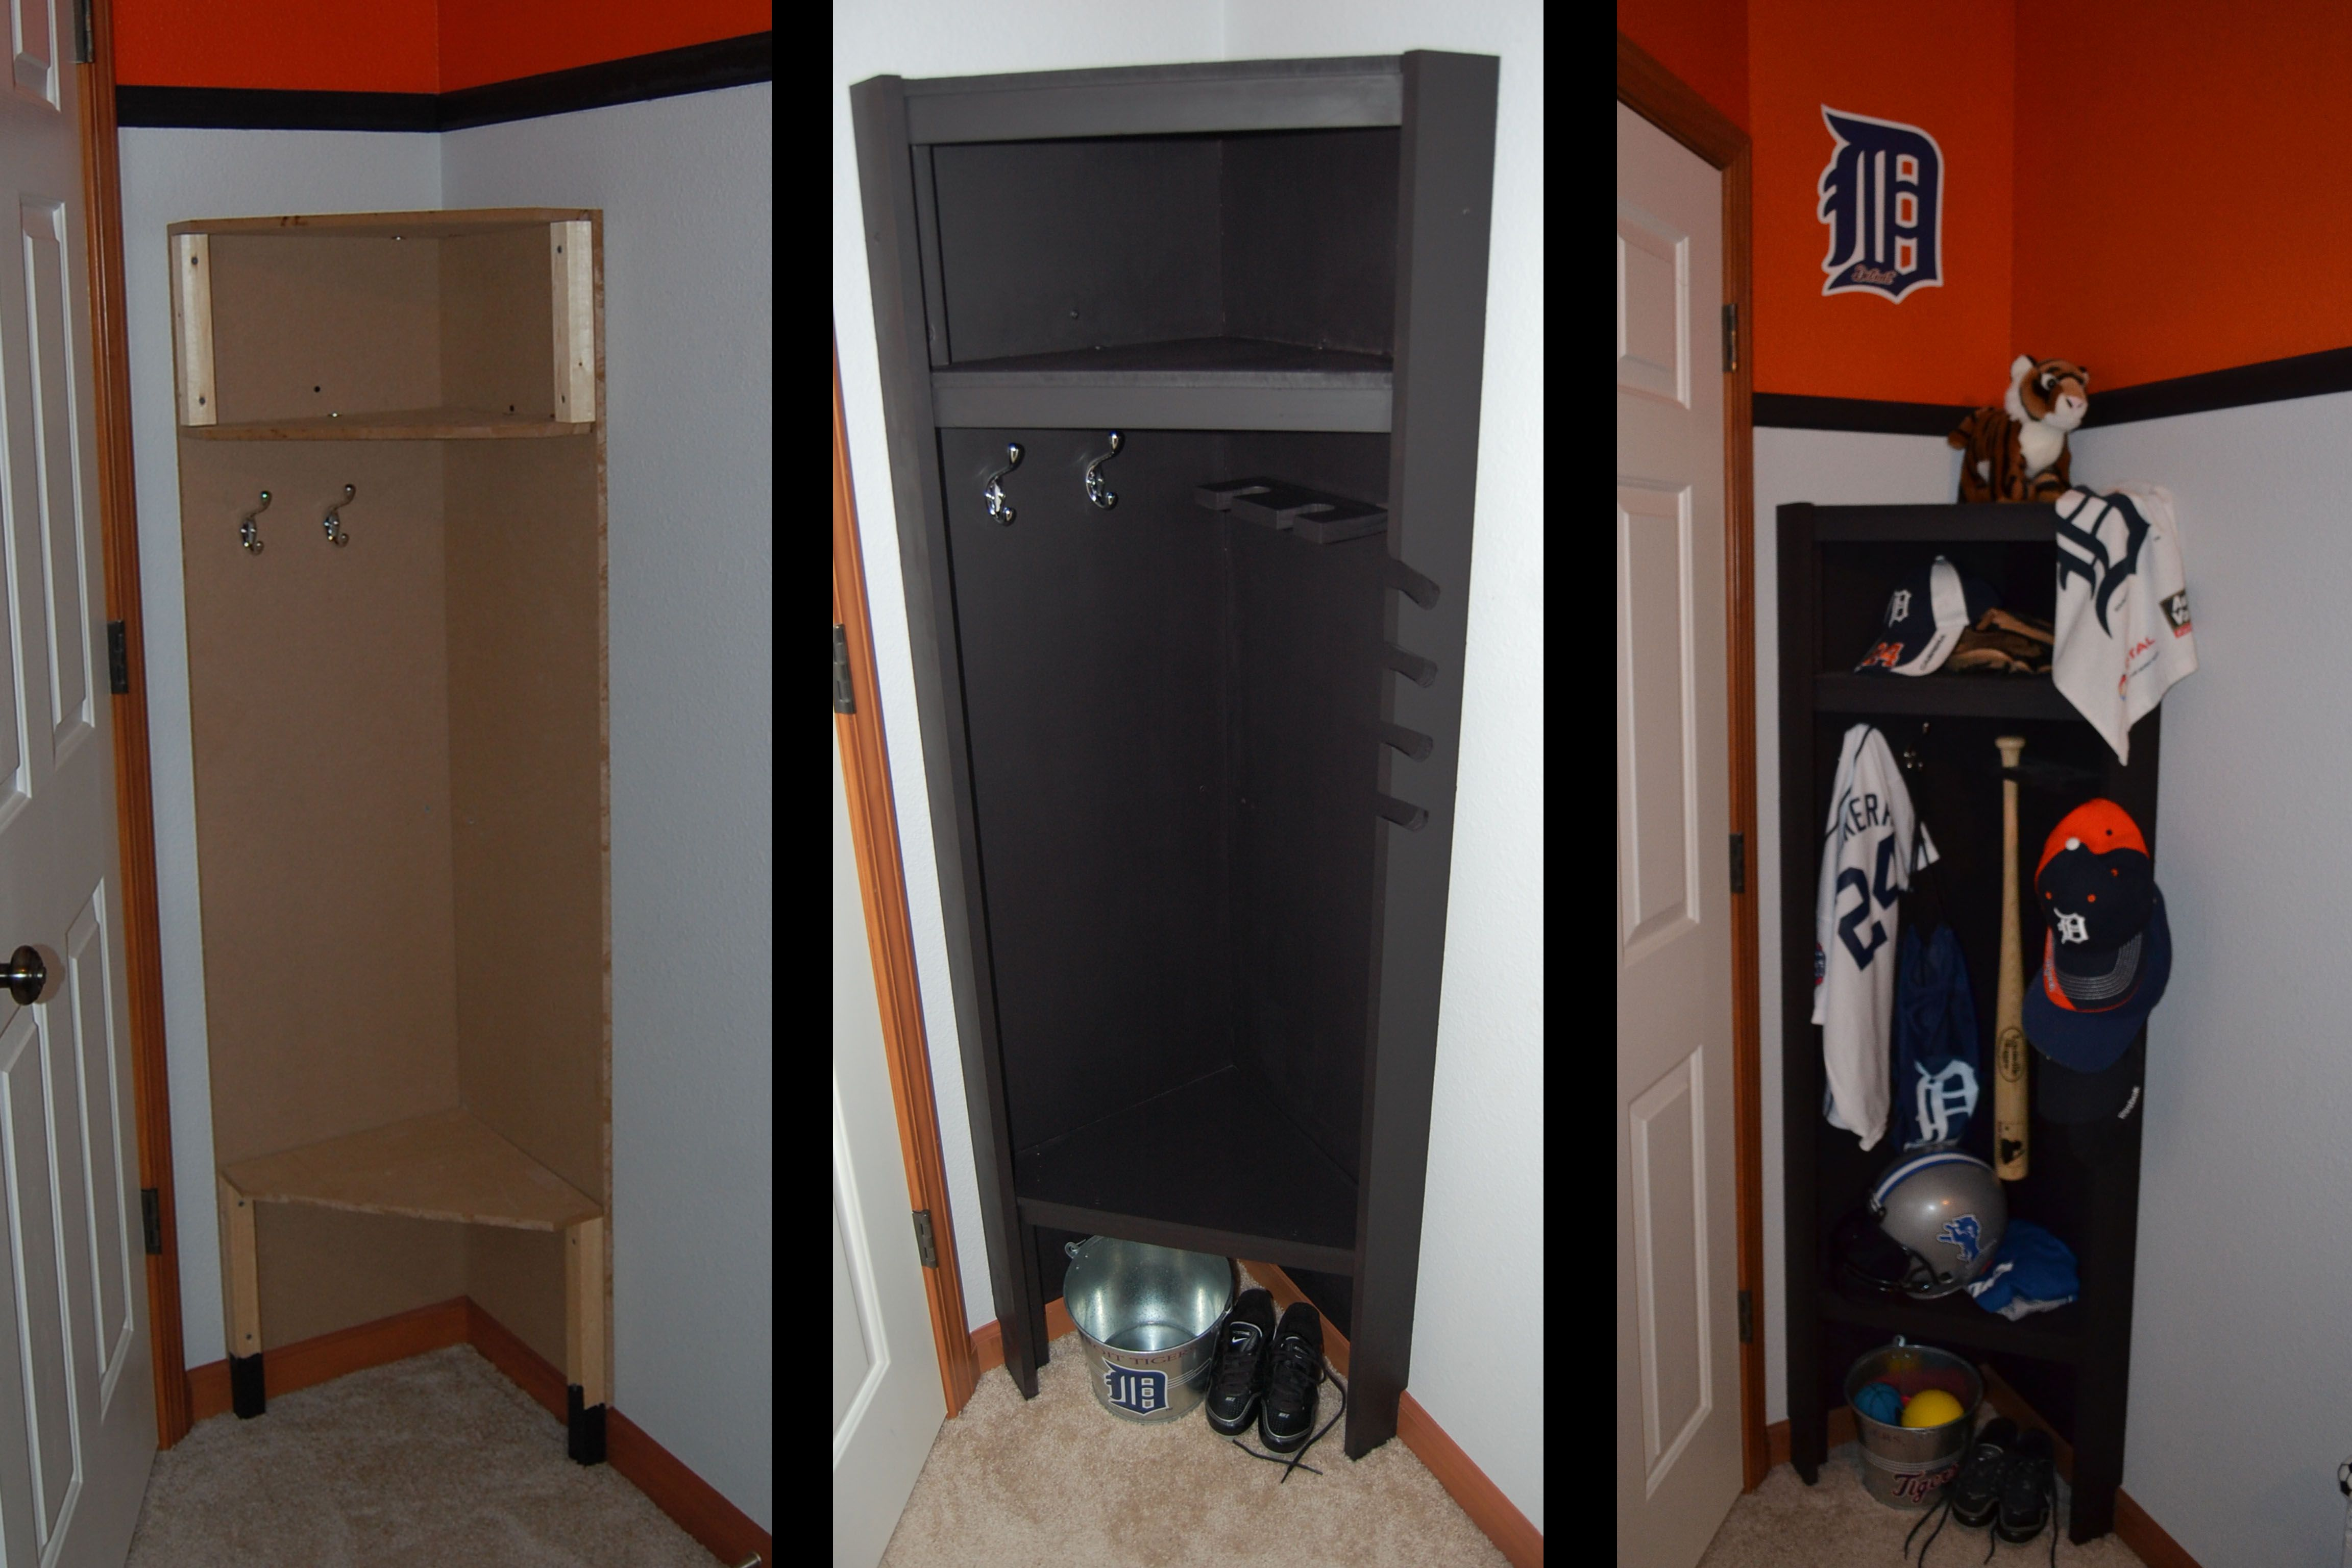 Locker Room Style Sports Cubby For Boys Bedroom Detroit Tigers Makes Use Of Wasted E Behind Door Notched Out Around The Baseboards Because Someday